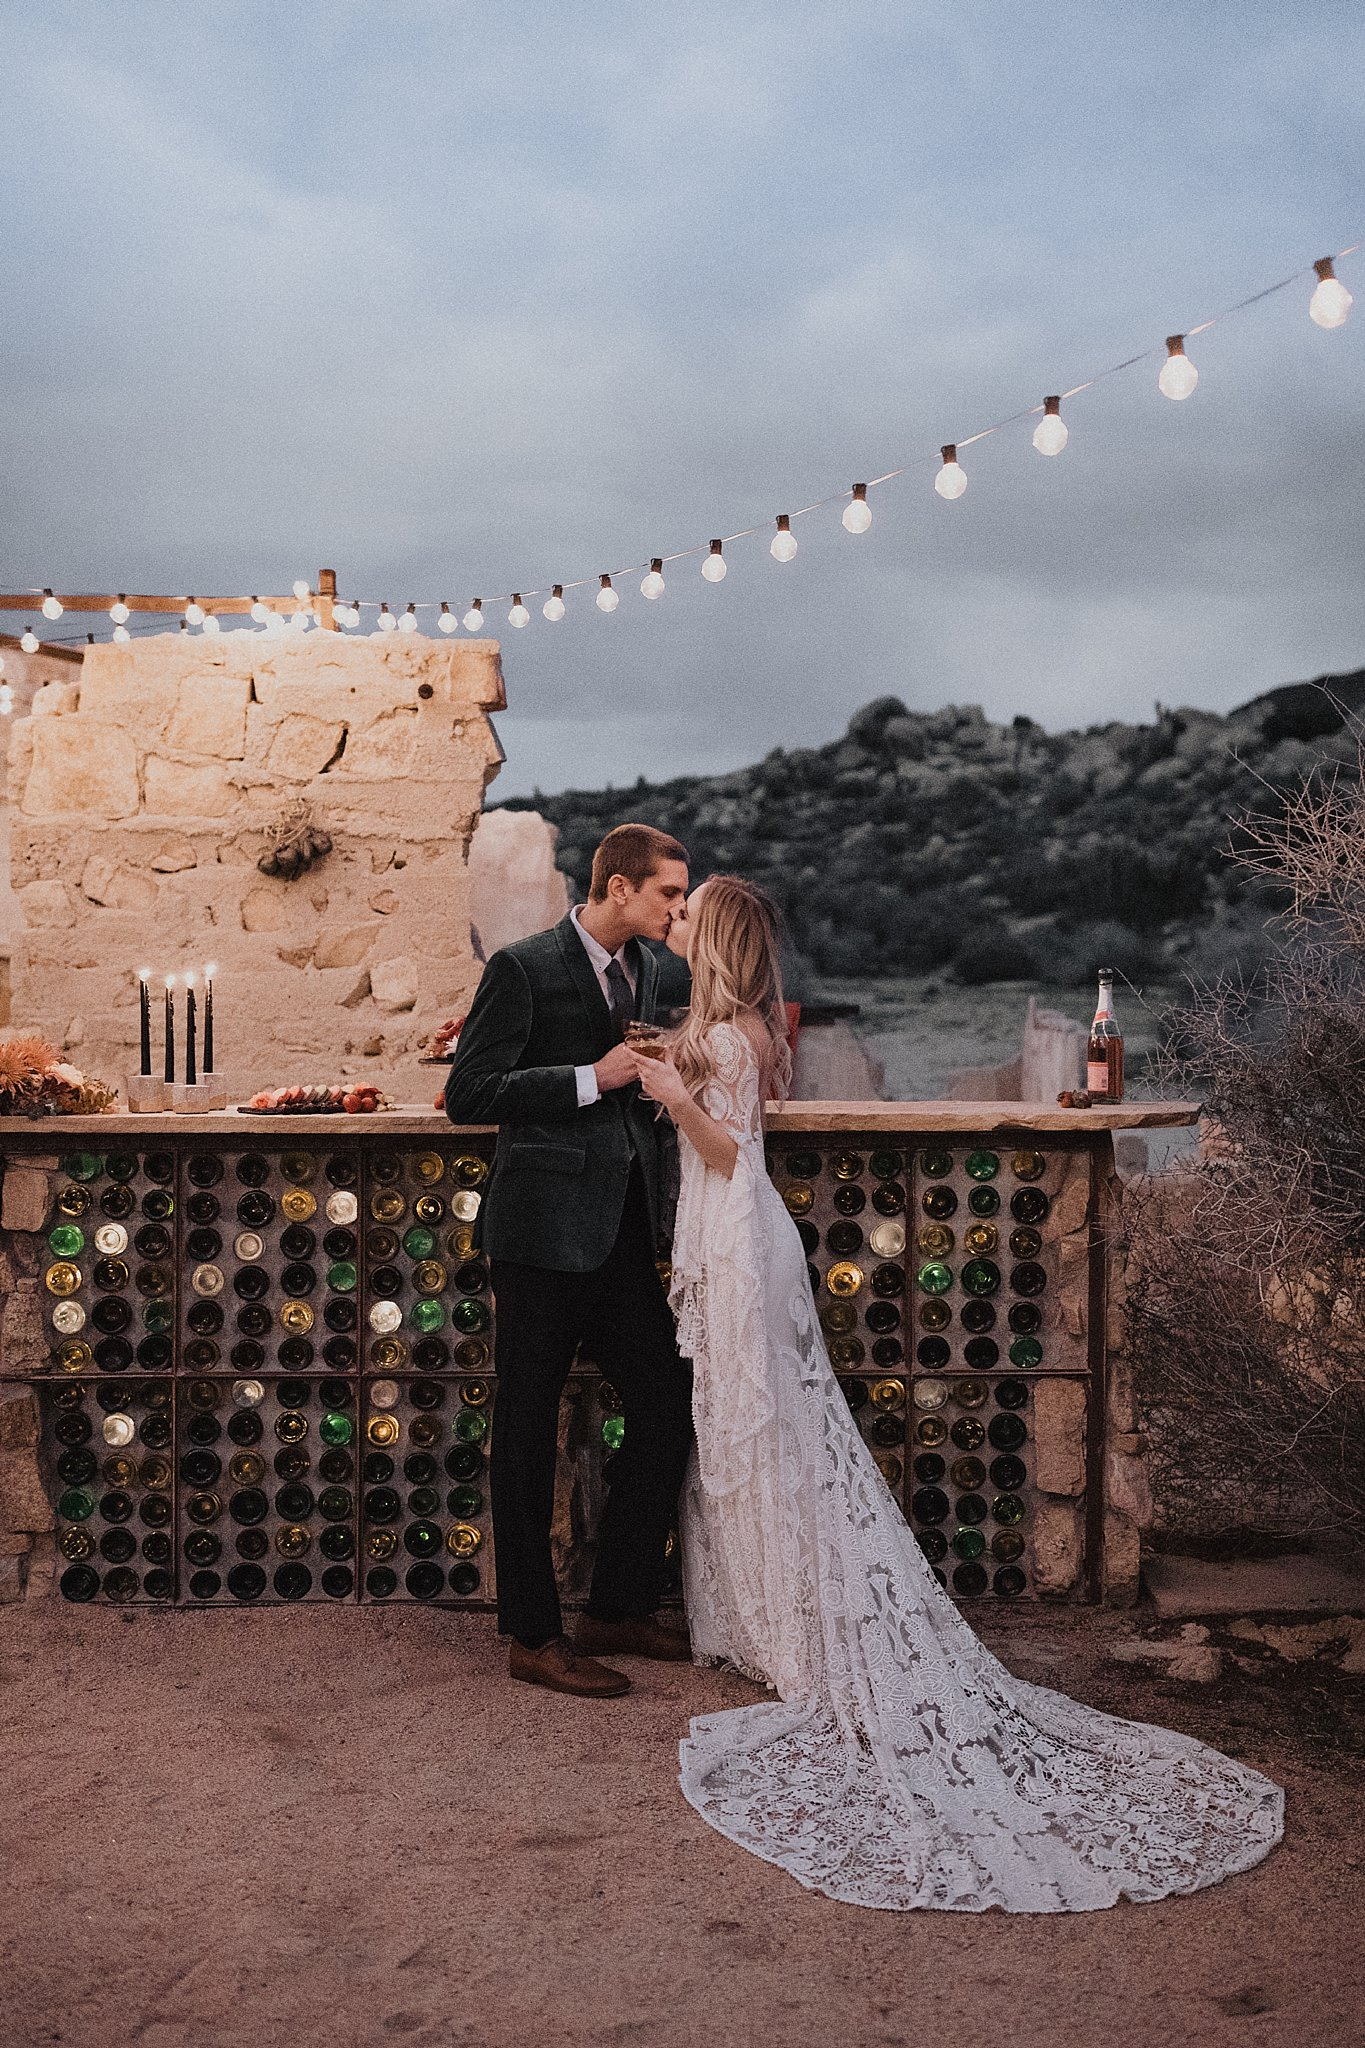 Meg's Marvels Photography - Joshua Tree Elopement California Wedding_0183.jpg